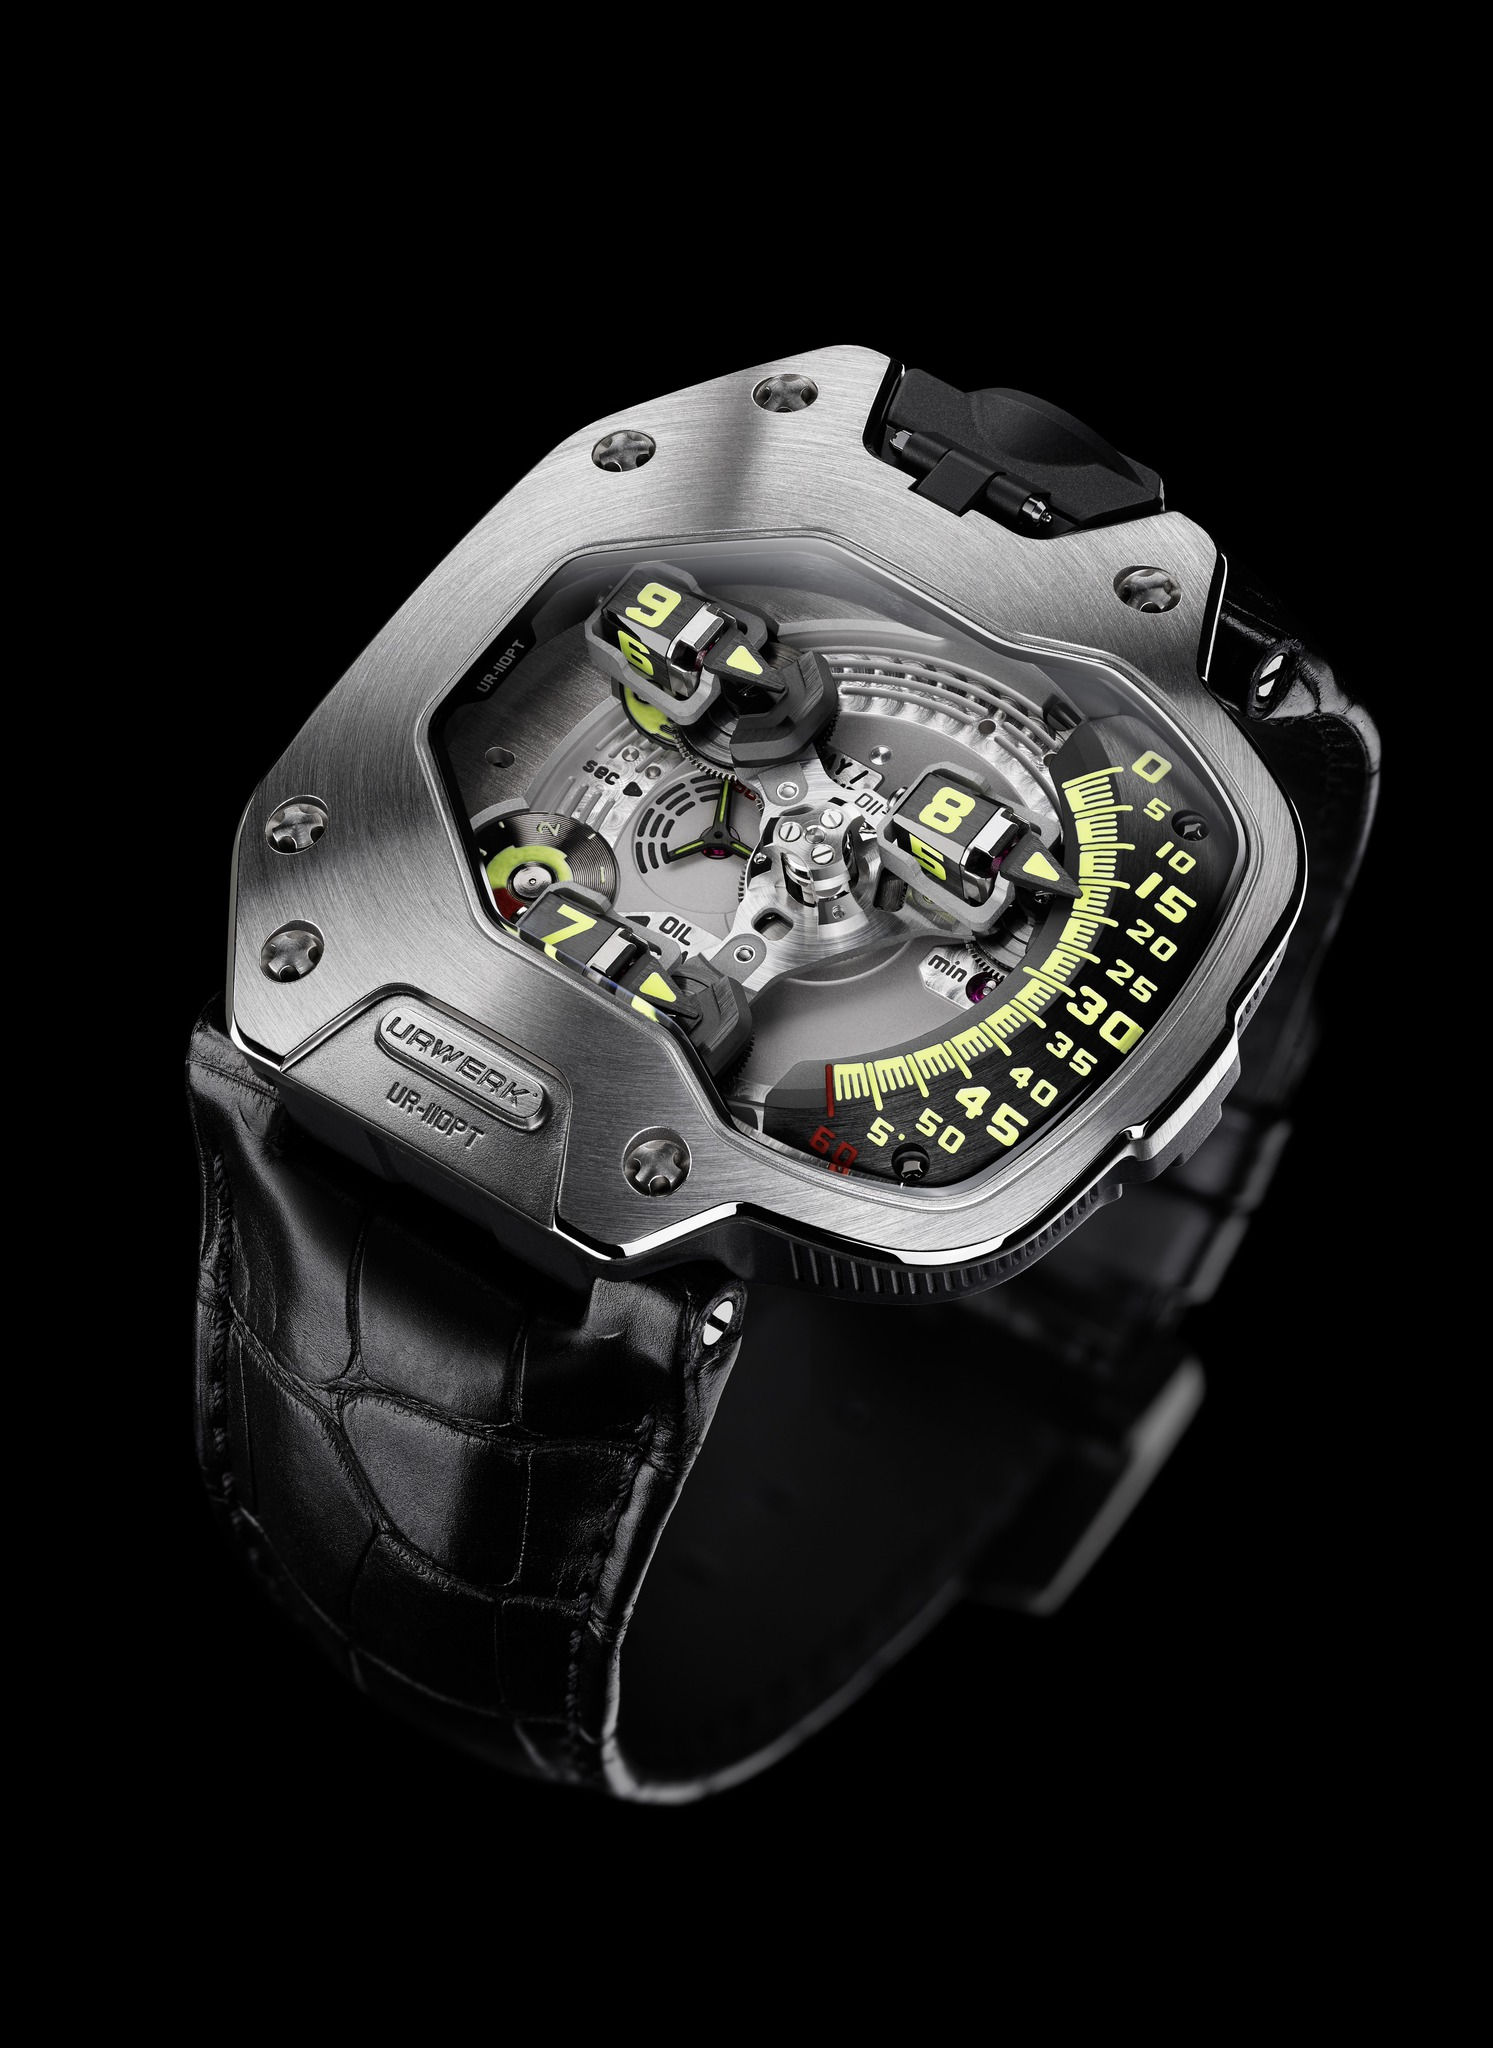 Replica Urwerk UR-110 PT Titanium and Platinum Watch